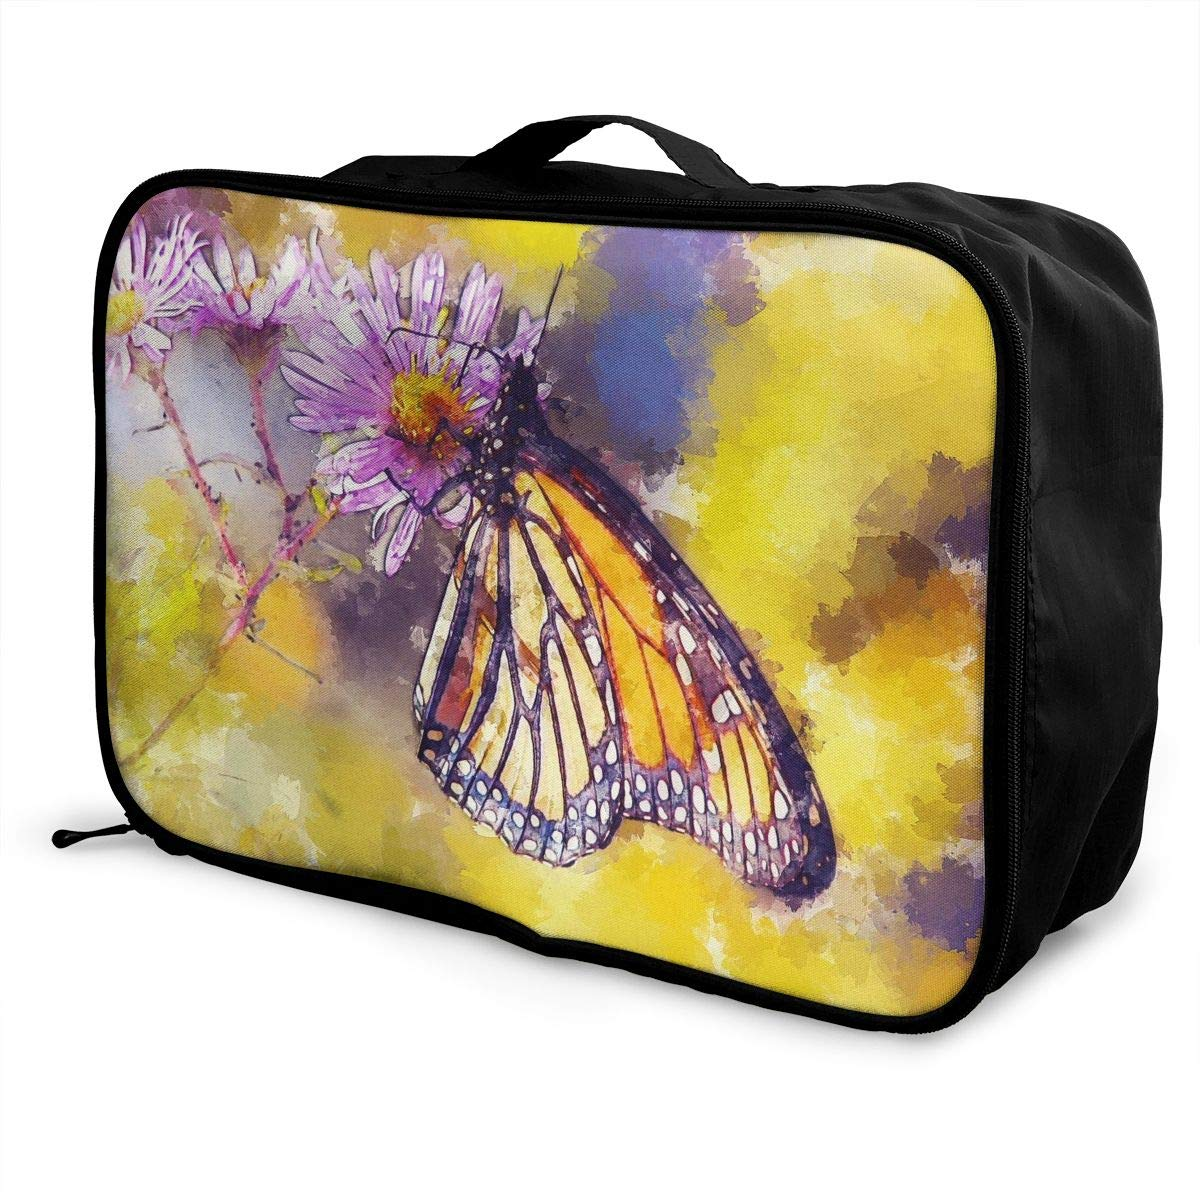 Butterfly FLOWER Natural Painting Travel Lightweight Waterproof Foldable Storage Carry Luggage Large Capacity Portable Luggage Bag Duffel Bag